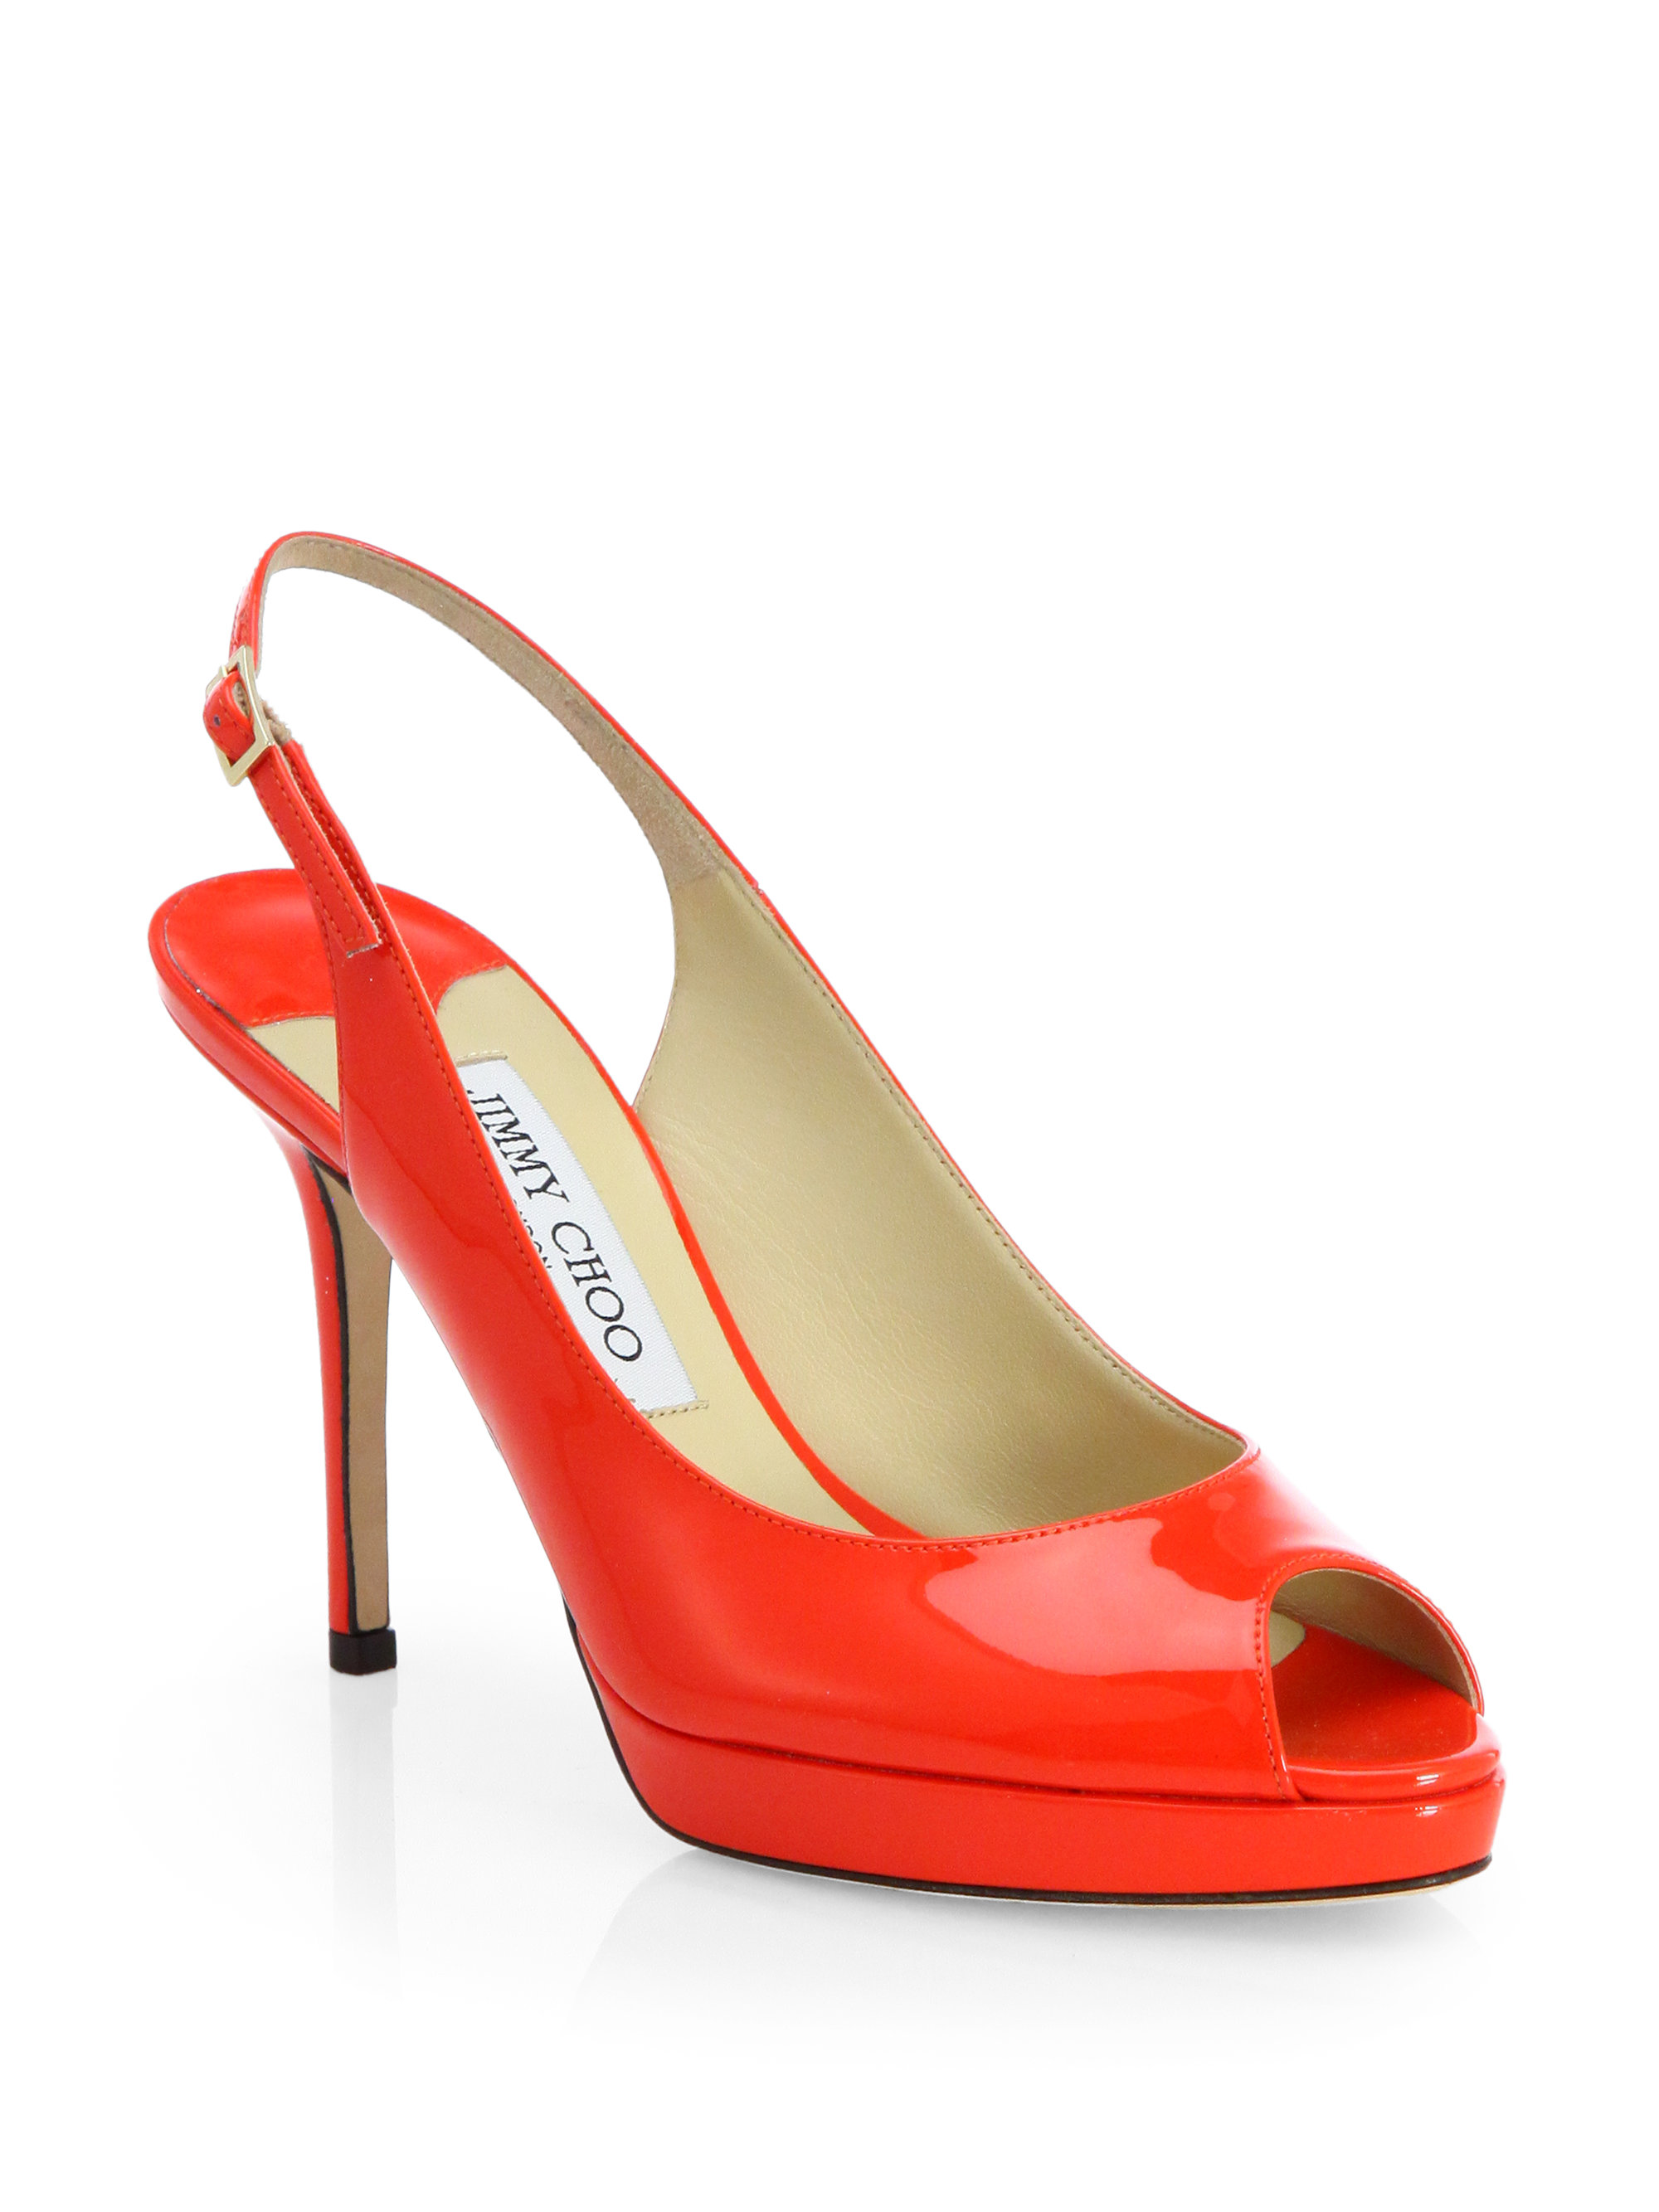 Jimmy choo Nova Patent Leather Slingback Pumps in Red (FLAME) | Lyst